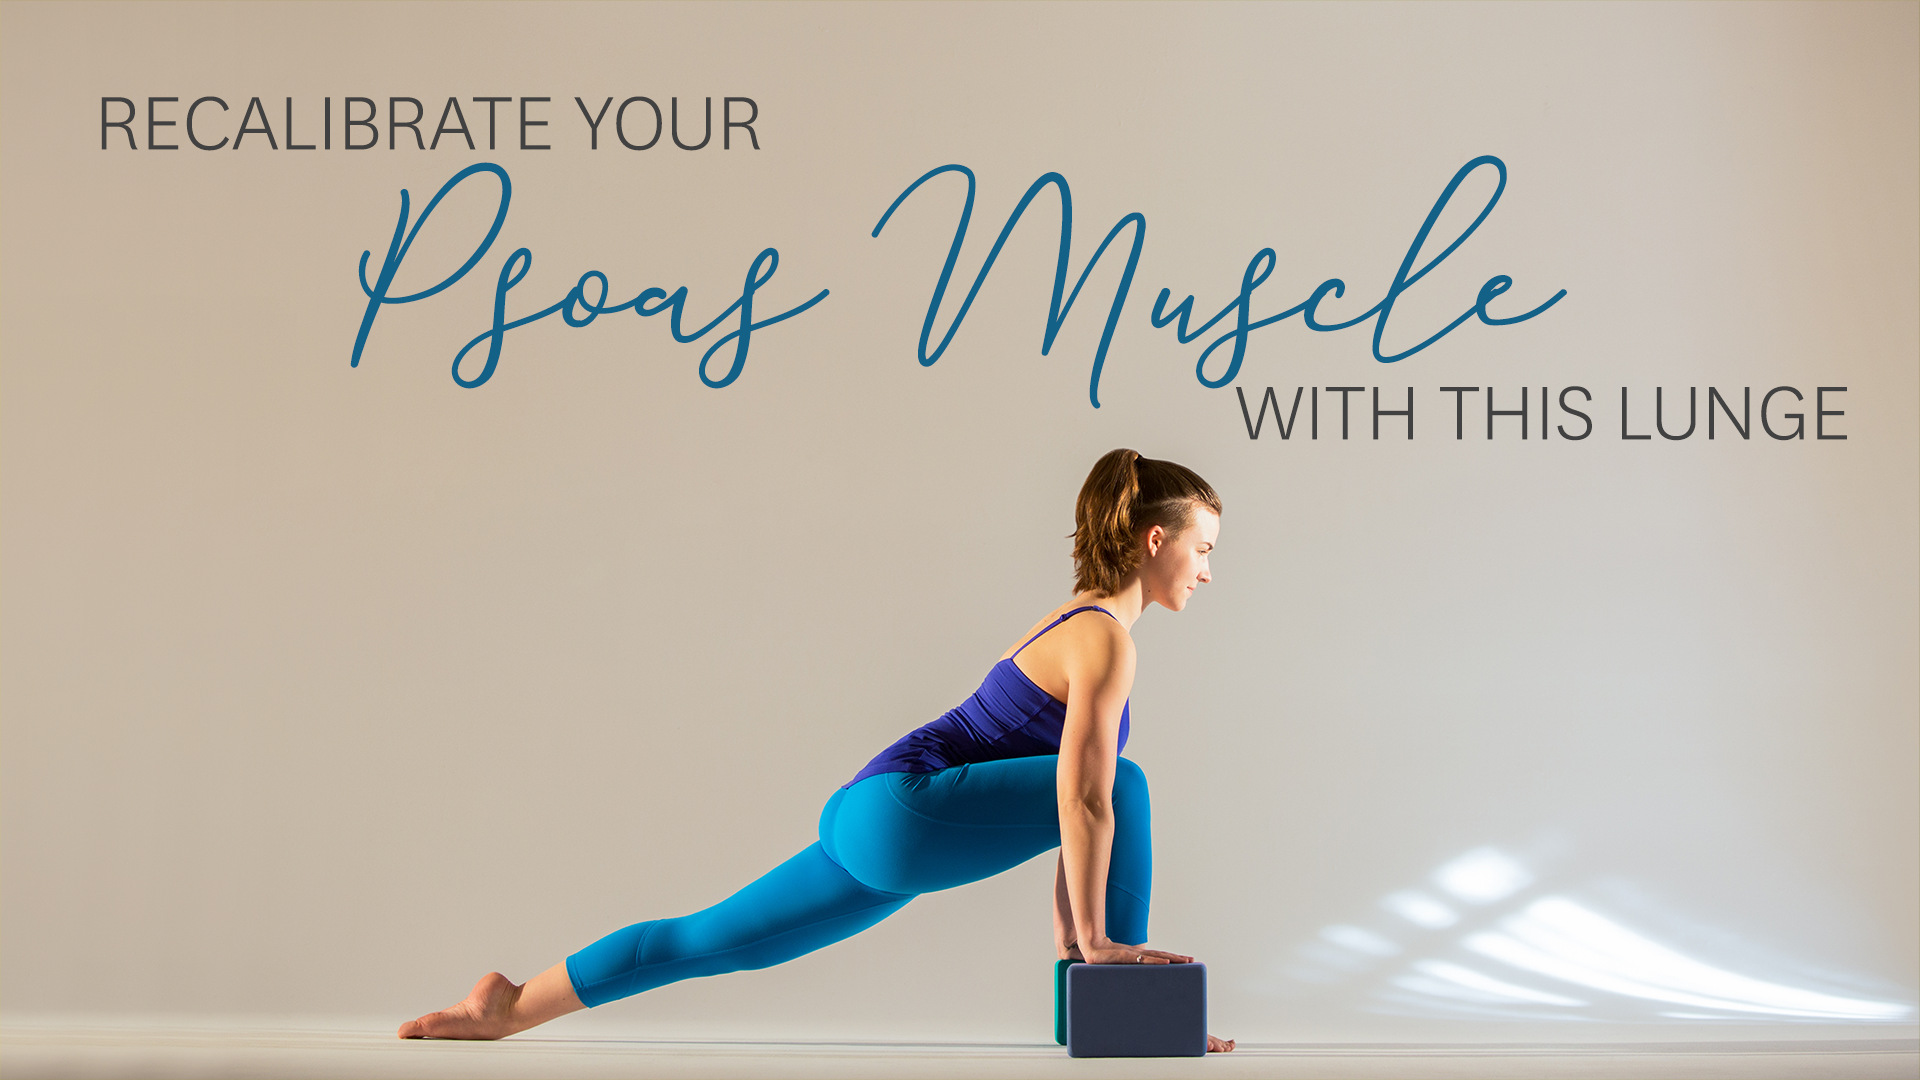 Recalibrate Your Psoas Muscle With This Lunge